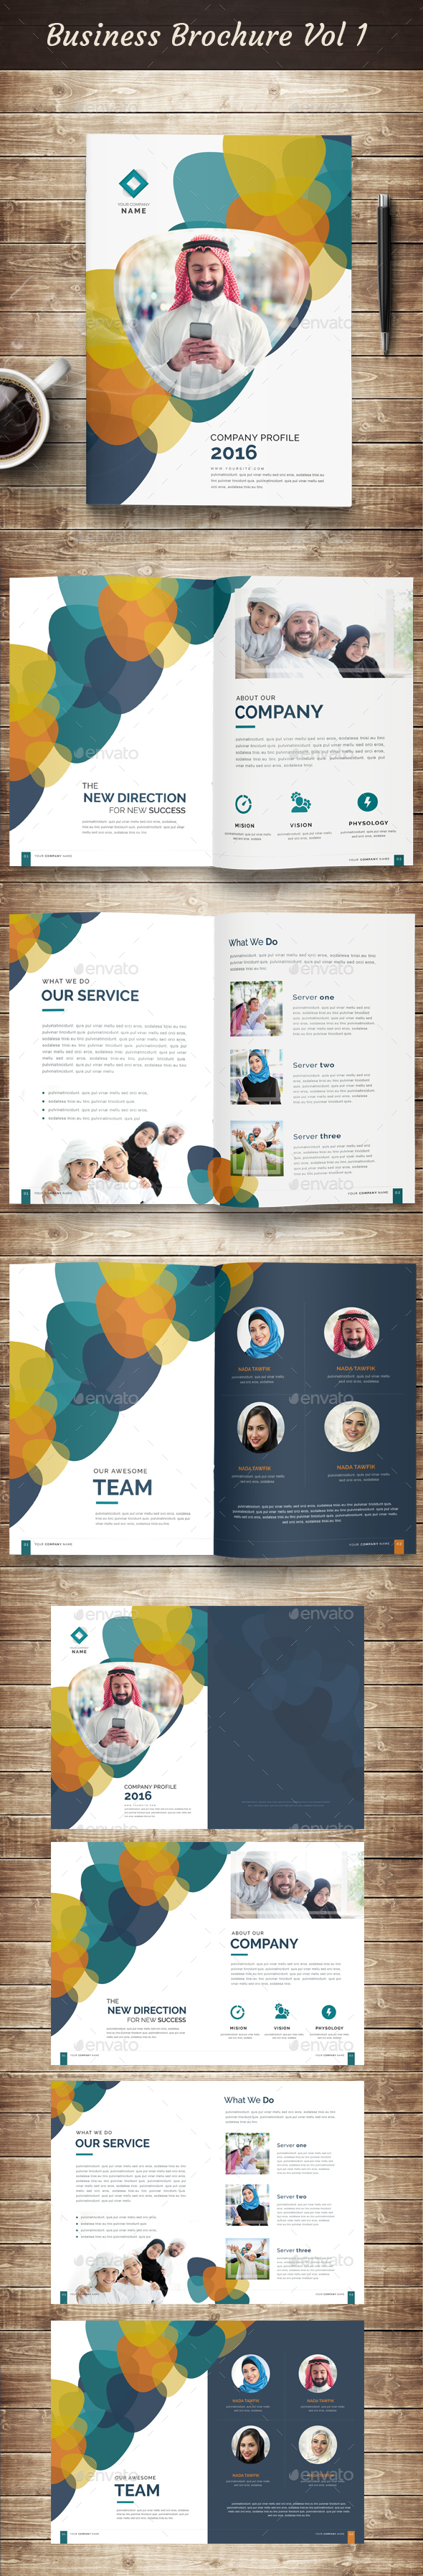 Business Brochure vol 1  - Corporate Brochures